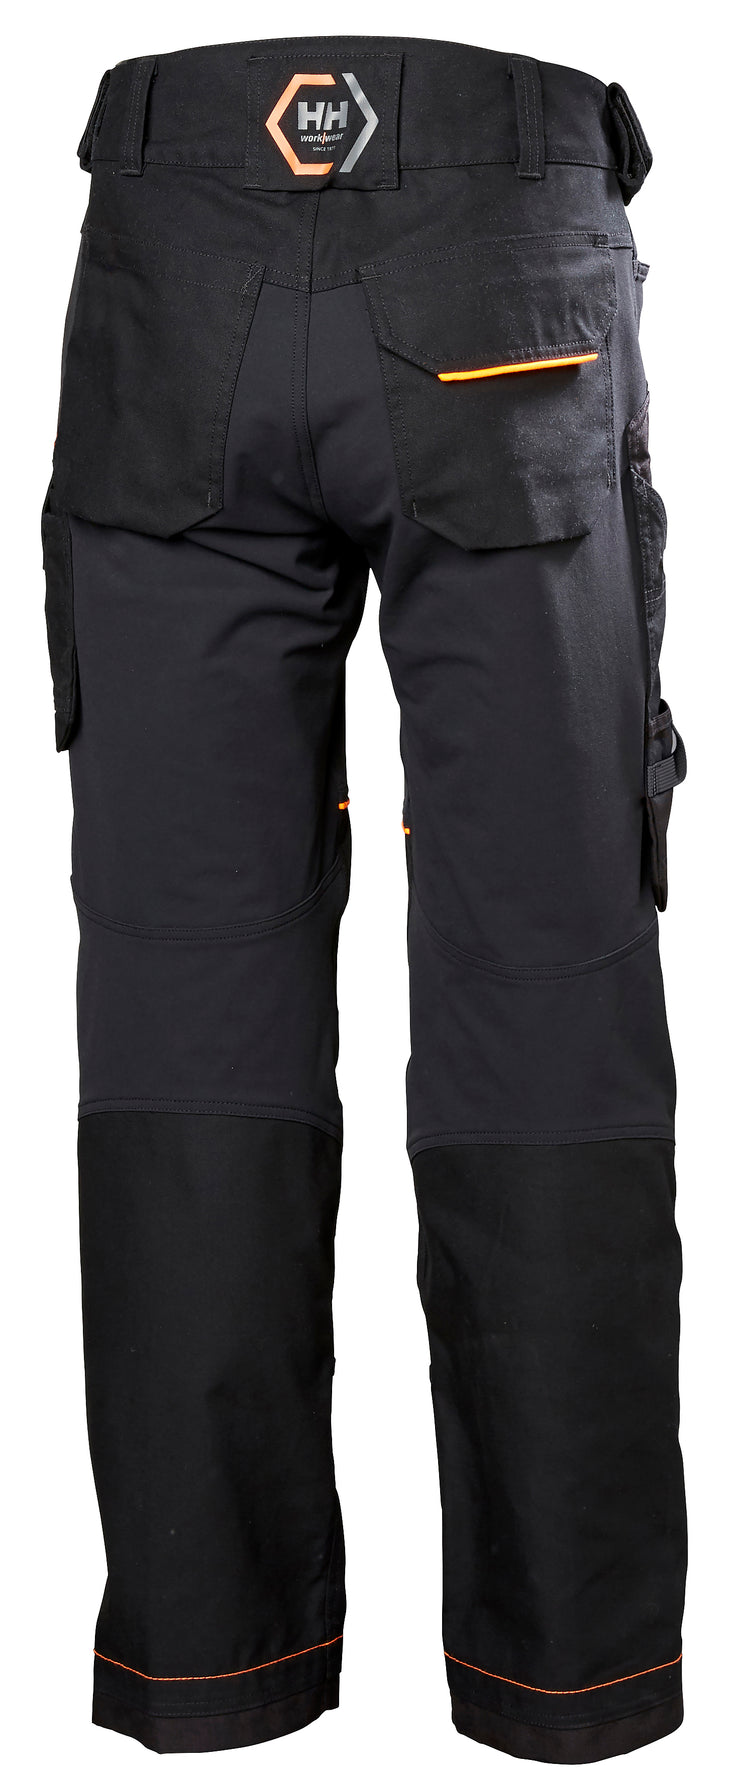 77446 H/H chelsea evolution work pant